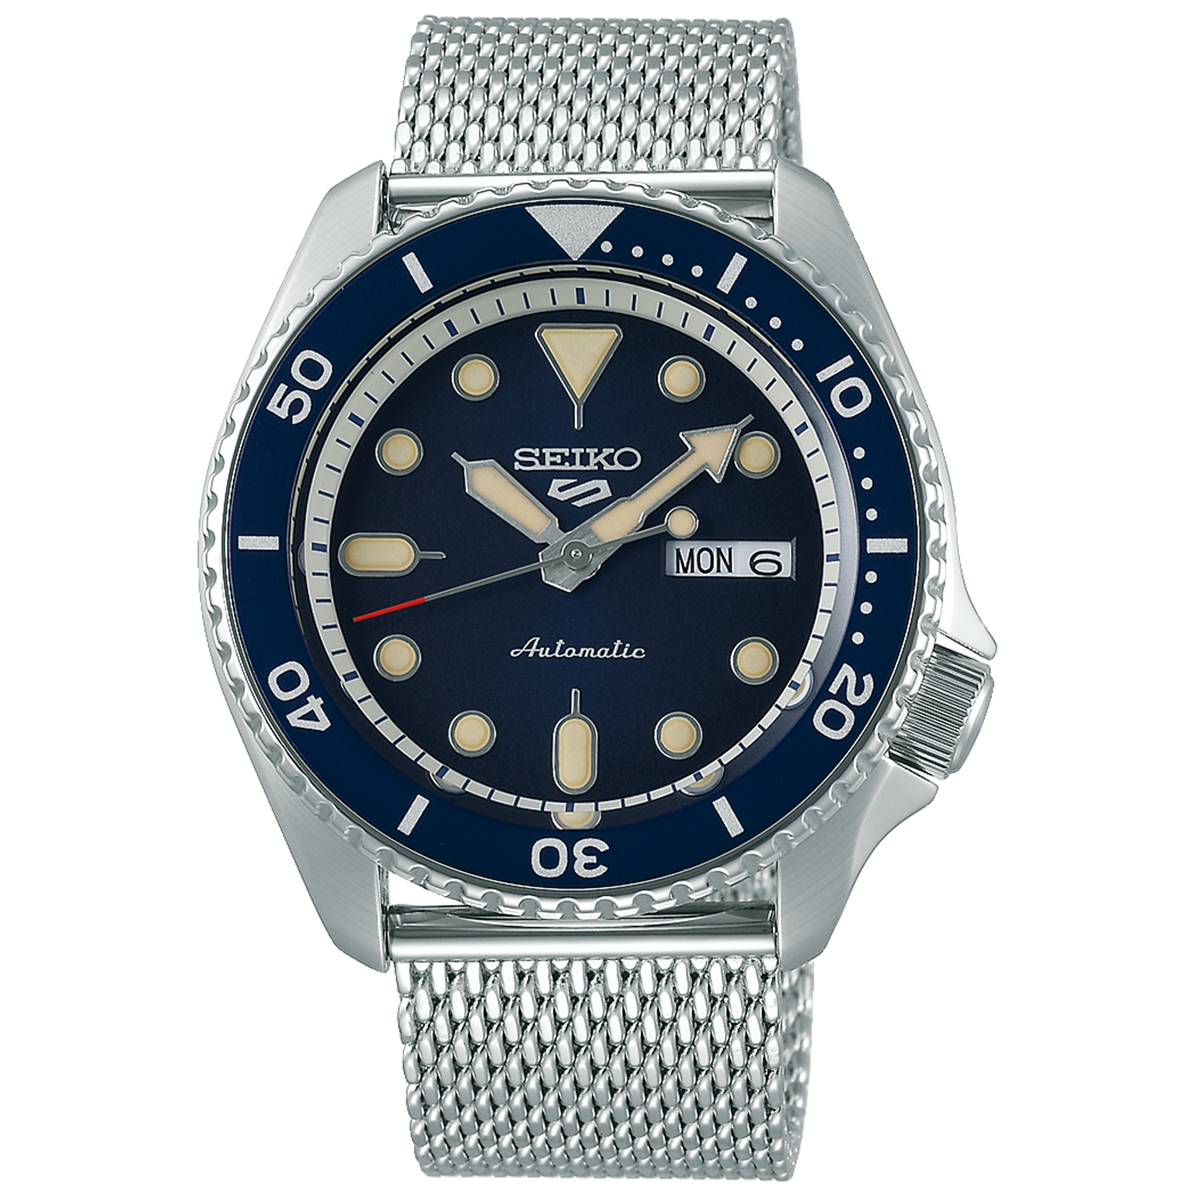 Seiko 5 Sport - Suits Series With Blue Dial